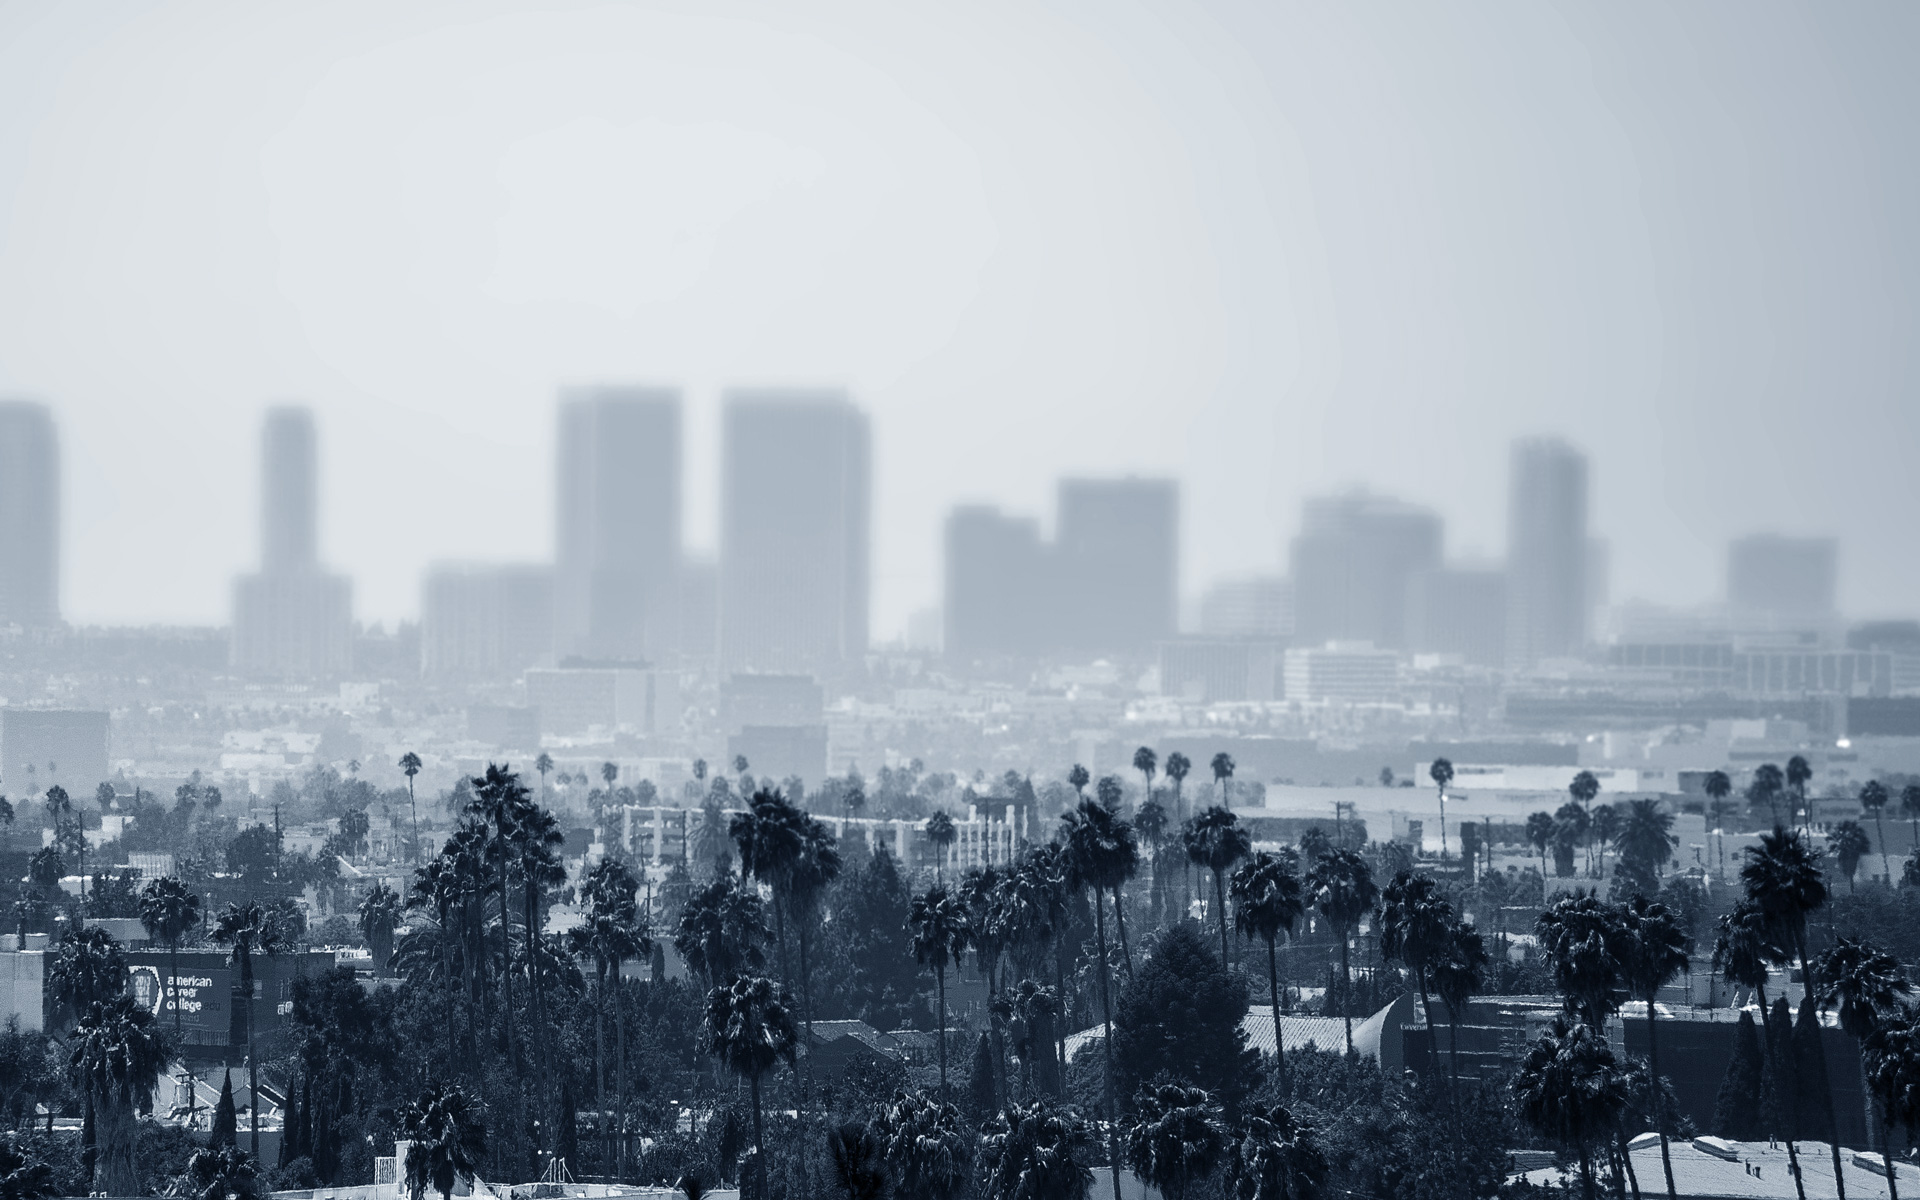 A Los Angeles Based Legal Practice Focused Exclusively on Commercial, Municipal, and International Insolvency Matters.